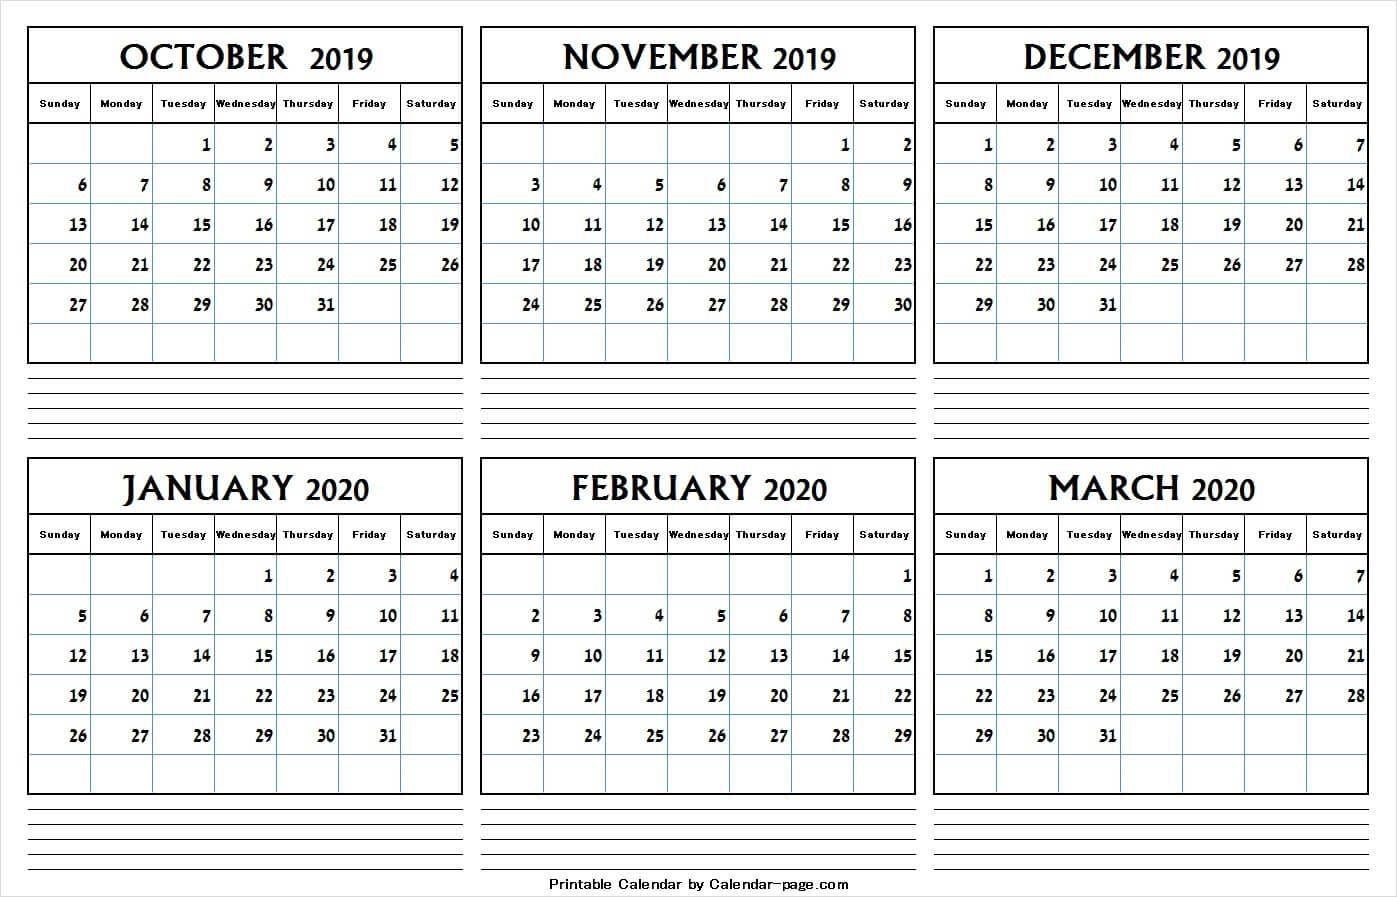 6 Month Calendar October 2019 And March 2020 | Editable Png